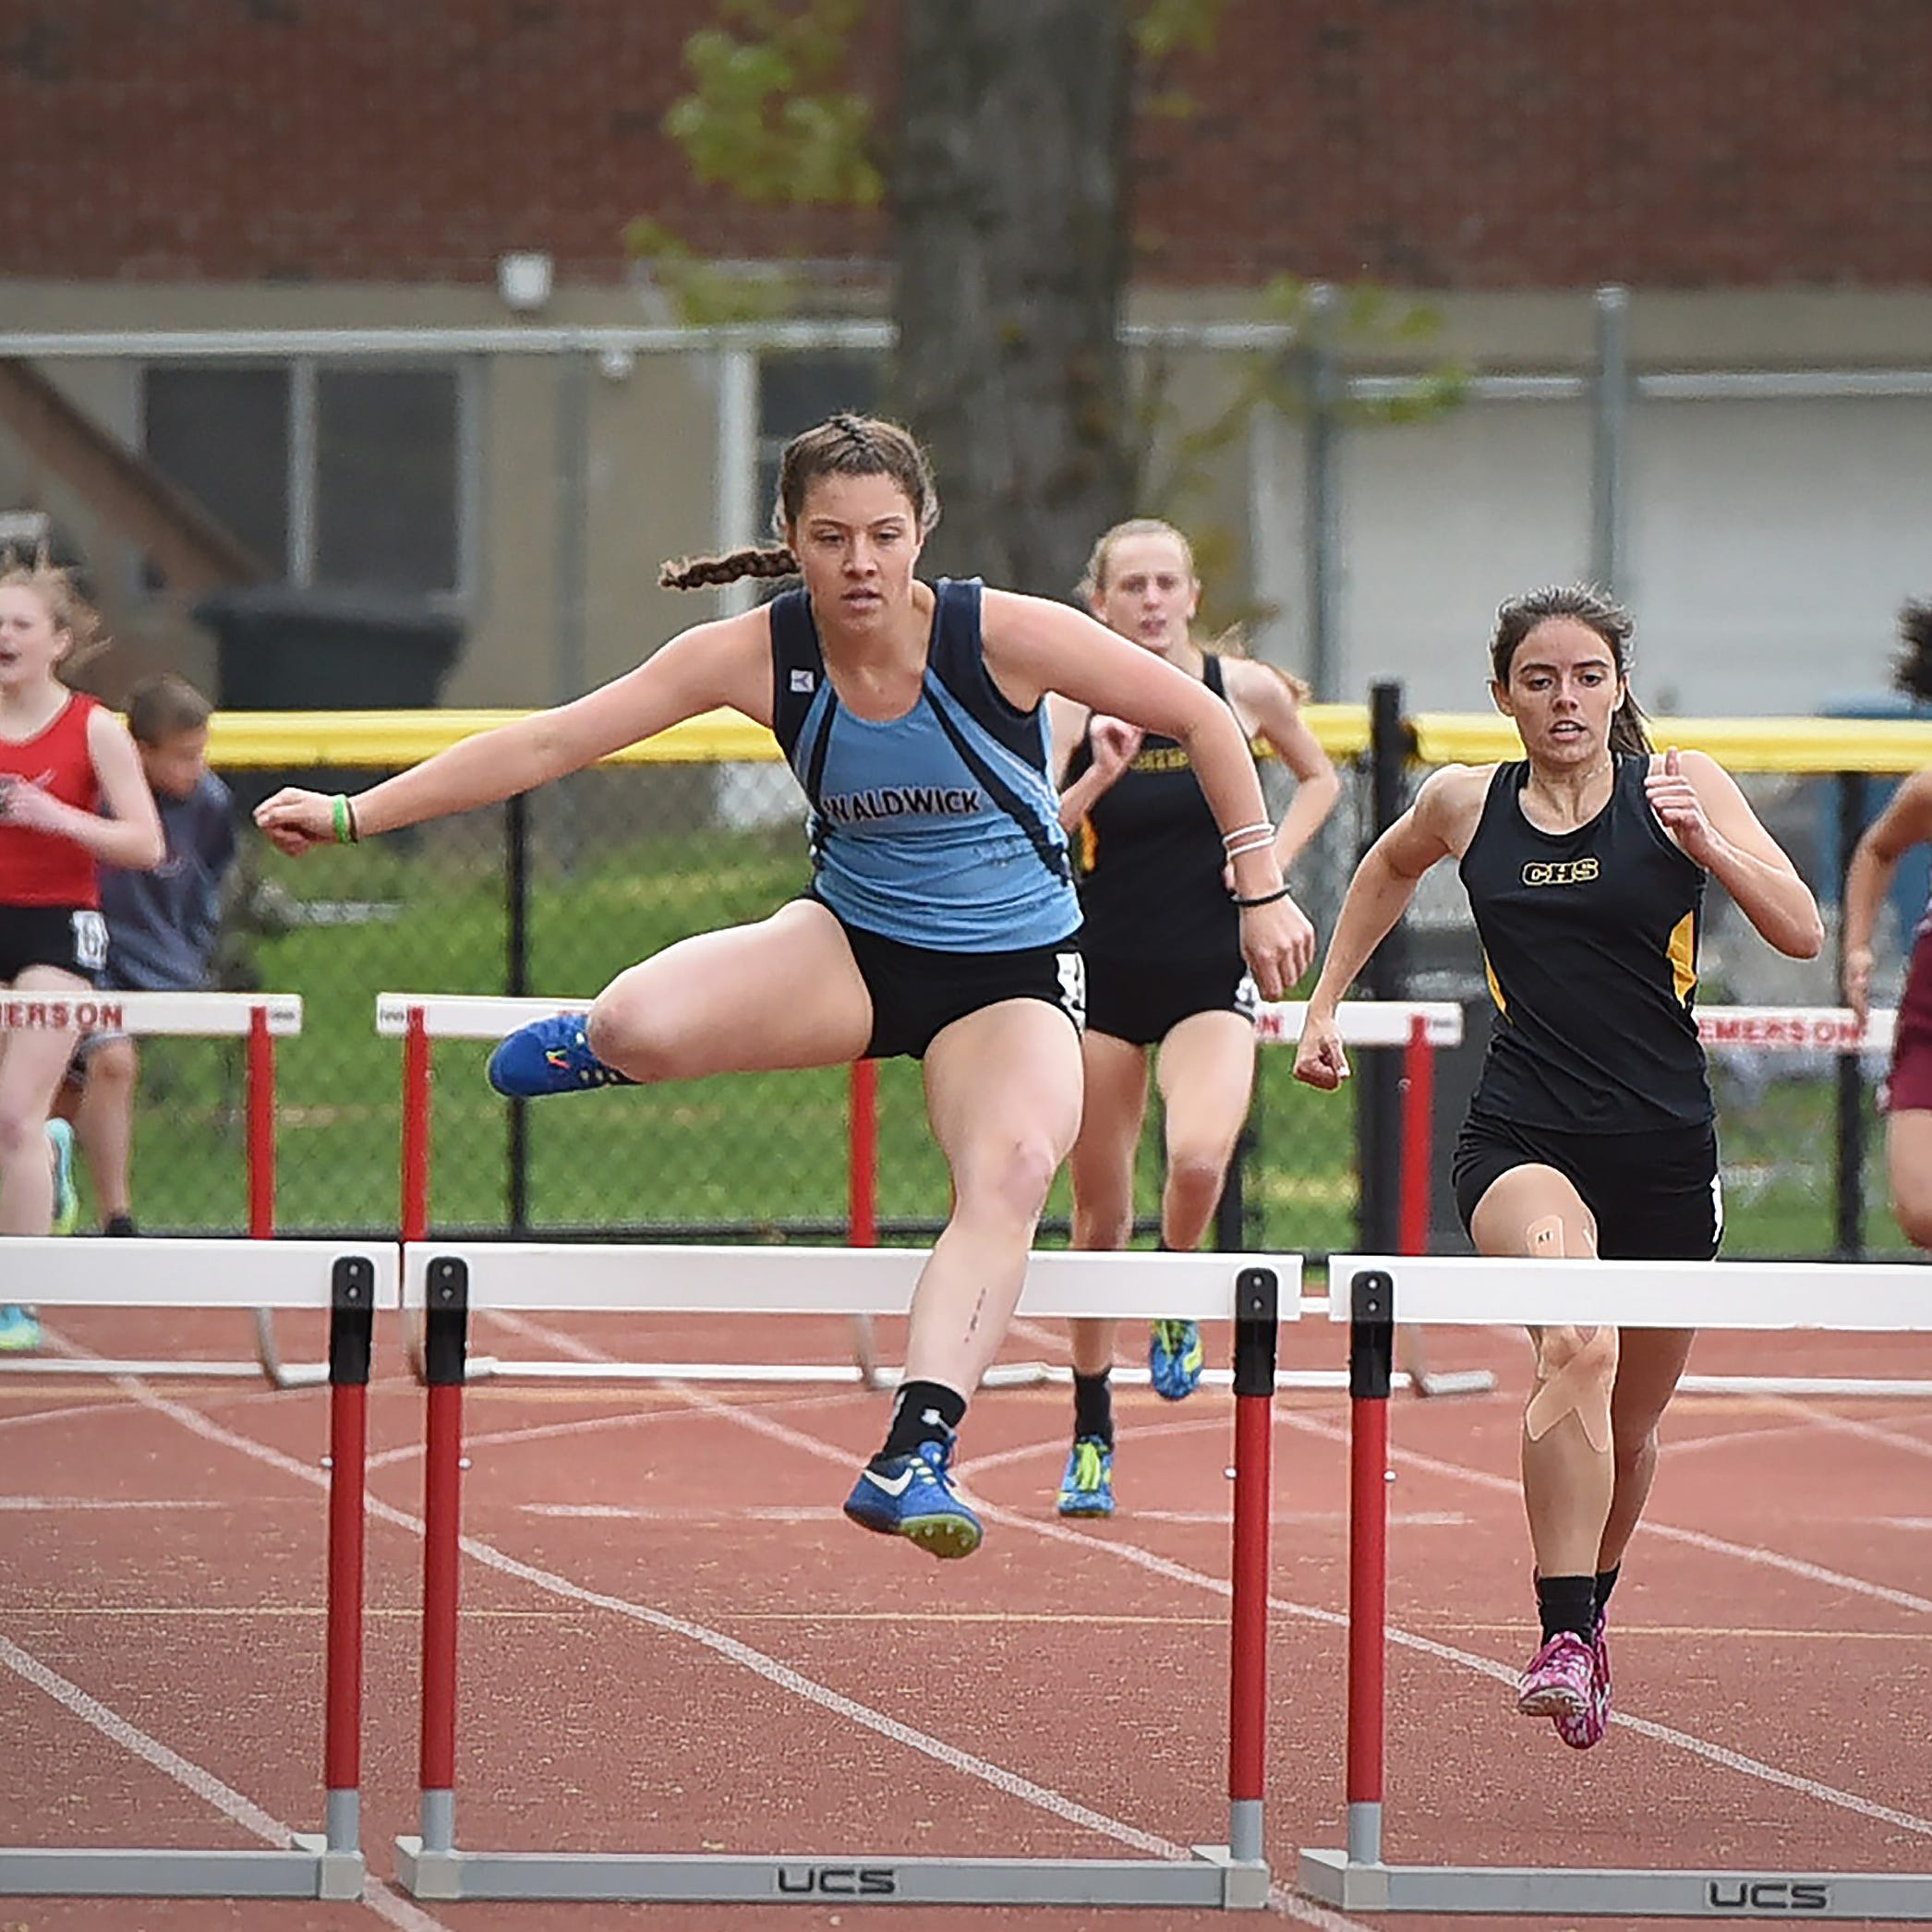 Samantha Stallard of Waldwick makes her way to finish first in the Patriot girls 400 meter hurdle during the NJIC Patriot and Liberty Divisional track meet at Emerson Jr./Sr. High School in Emerson on 04/29/19.